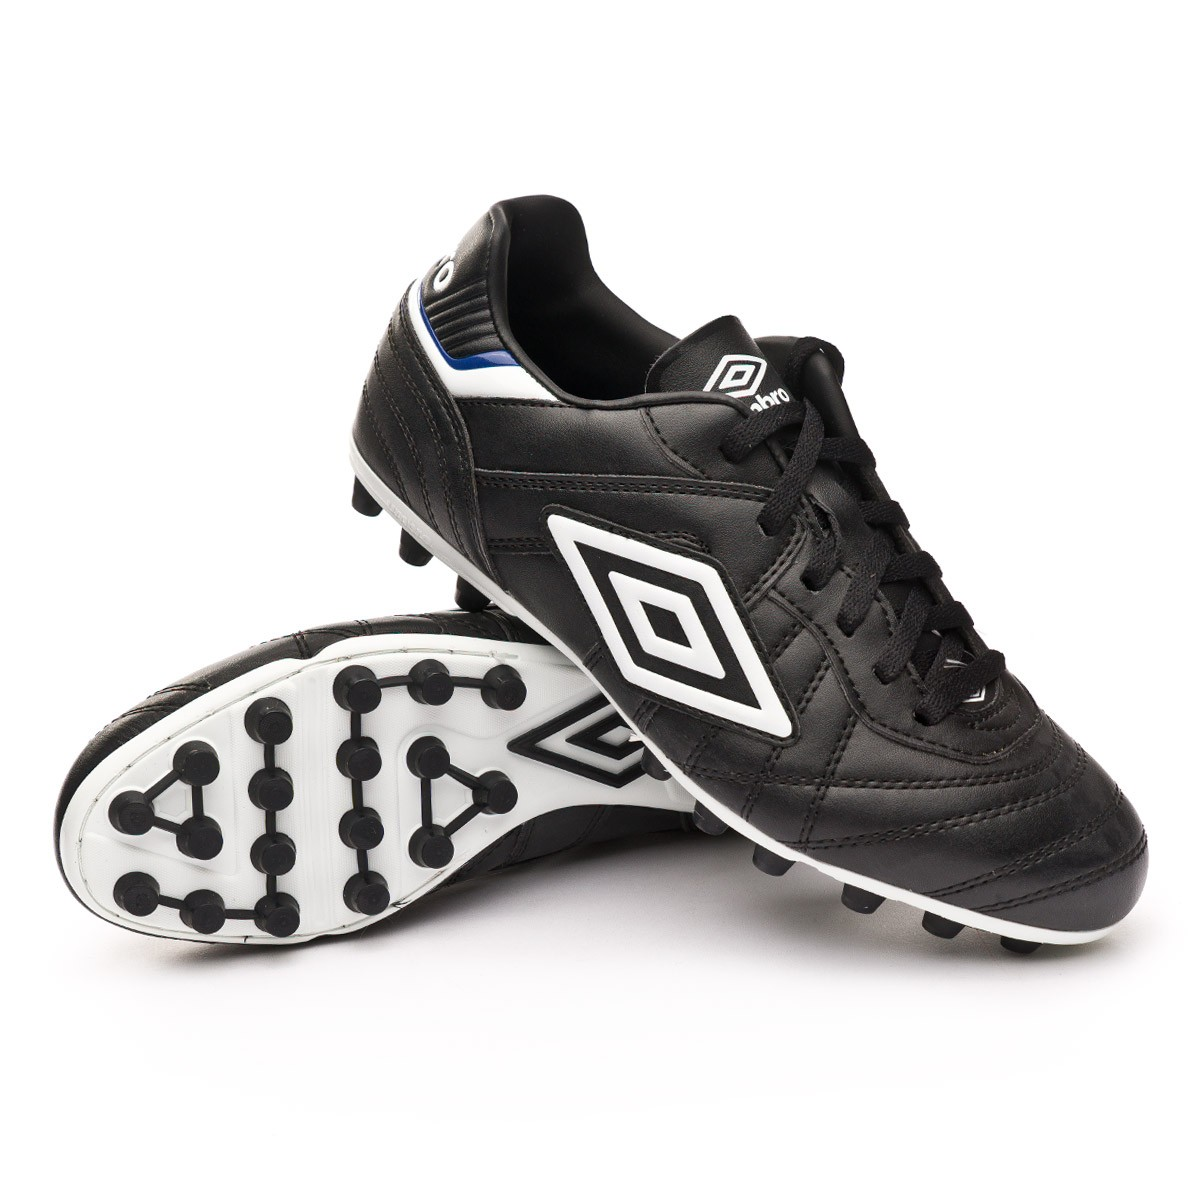 Scarpe Umbro Speciali Eternal Club AG Black-White - Negozio di ... 35acaf73039